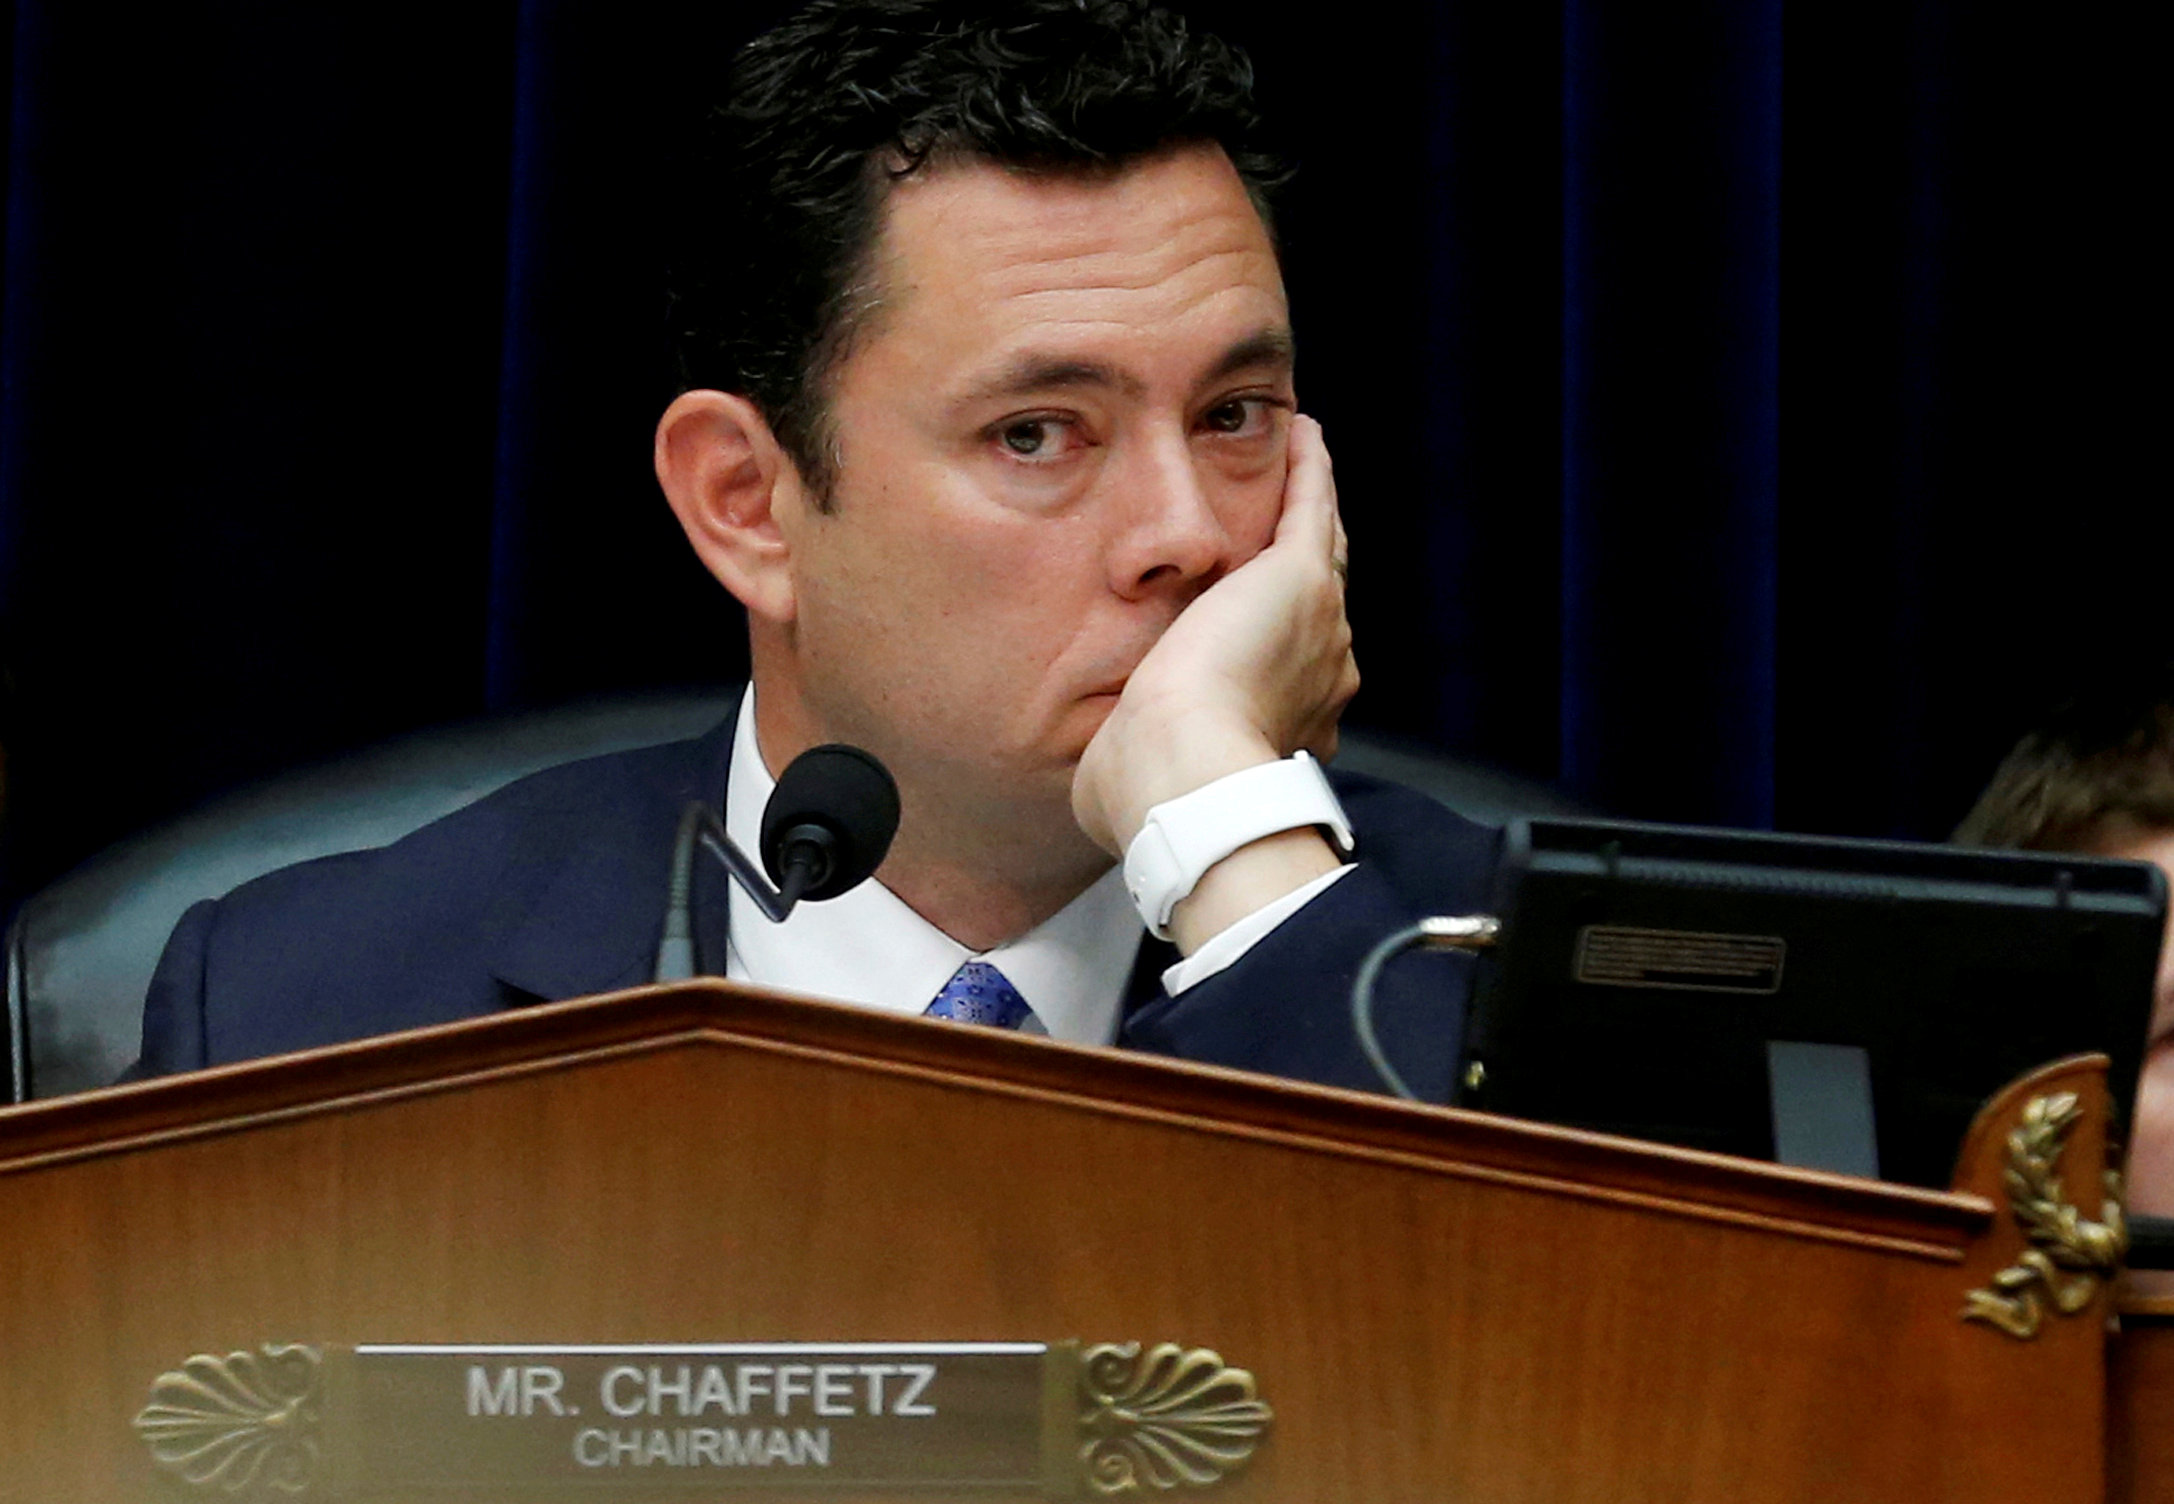 'What a class act!' Chaffetz says he'll pass on reading Clinton's book